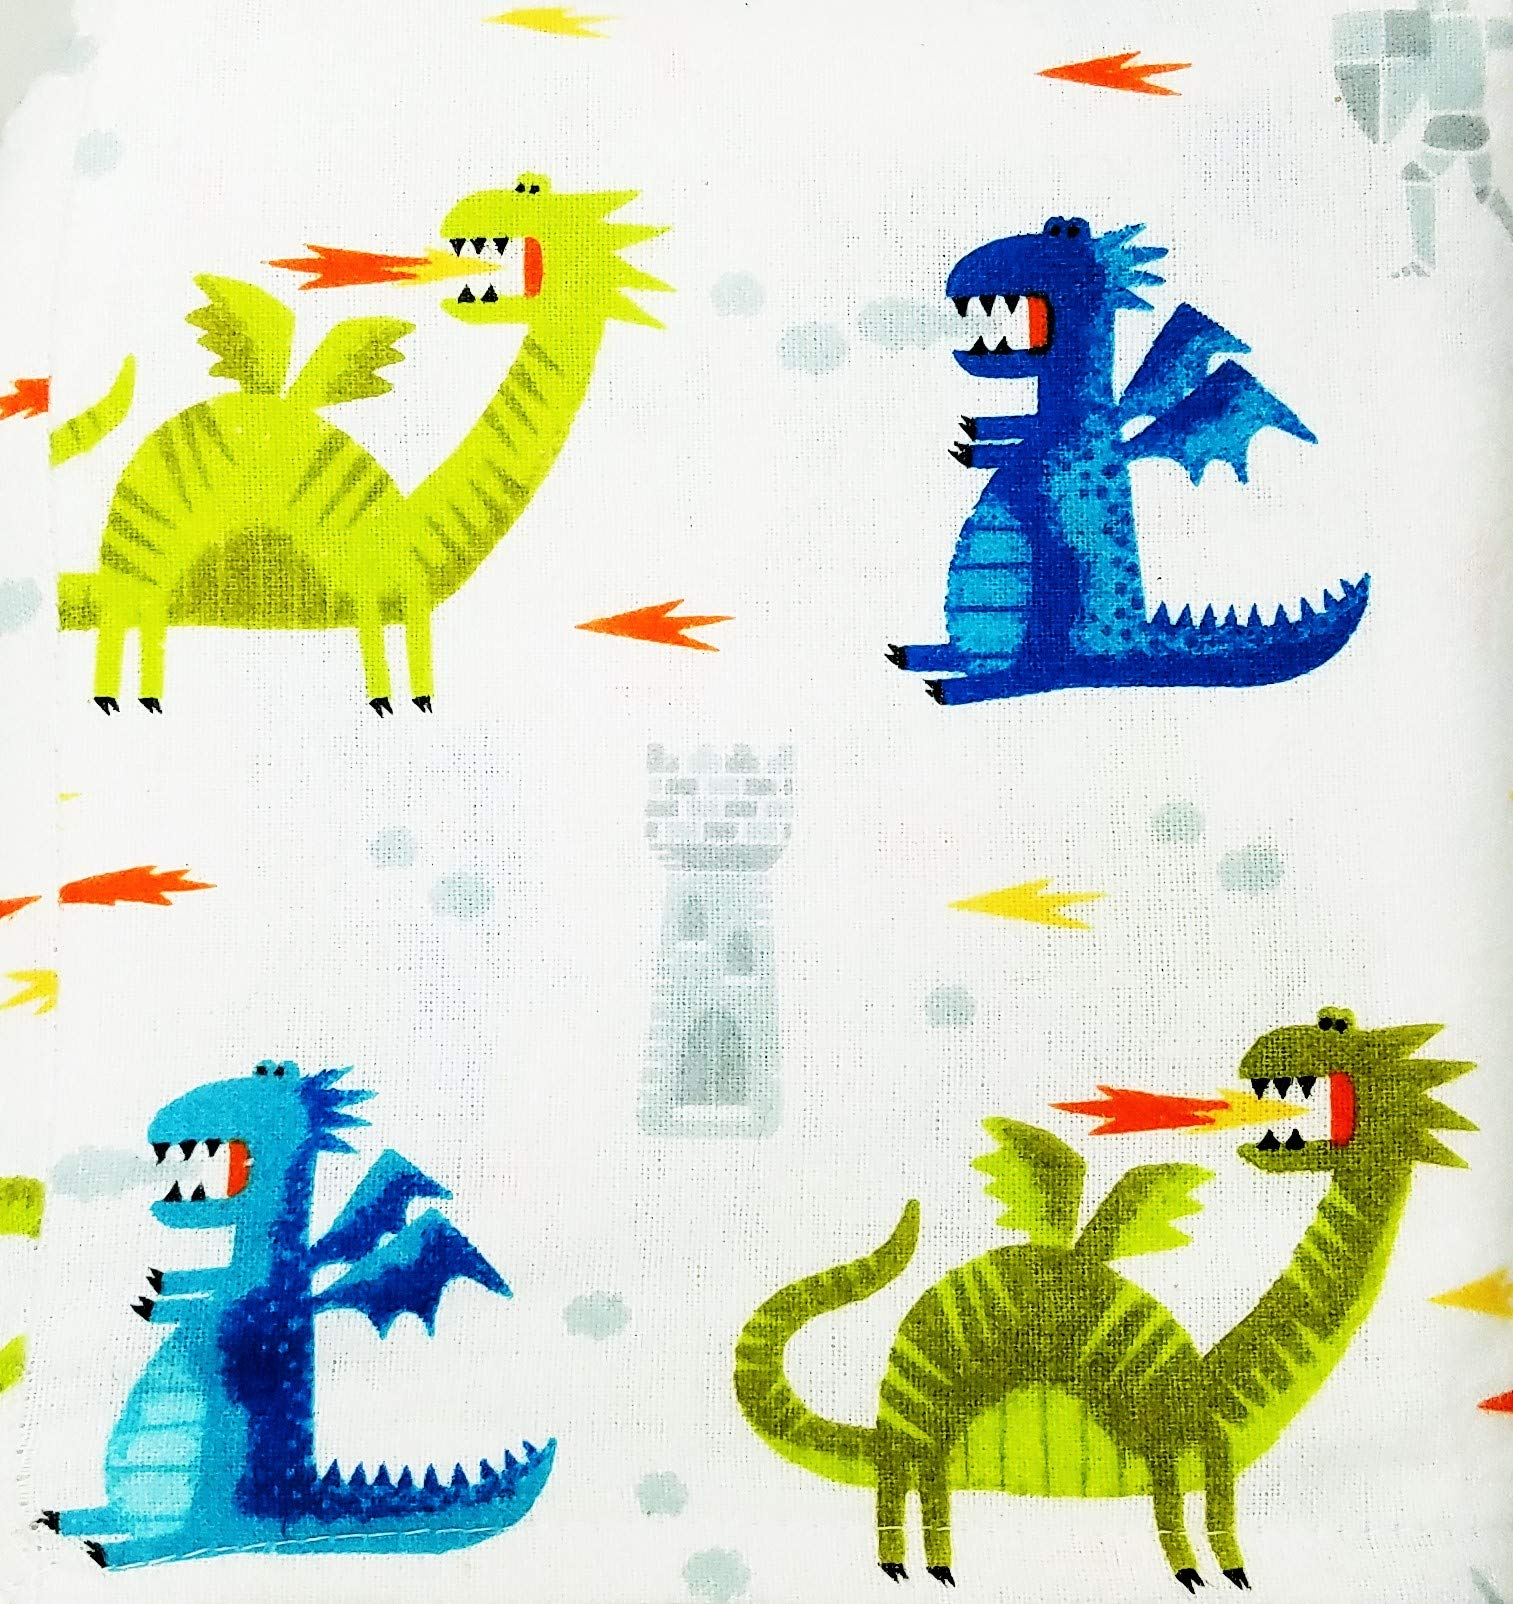 Pillowfort-Colorful-Dragons-Castles-and-Knights-Flannel-4-Piece-Sheet-Set-Full-Size